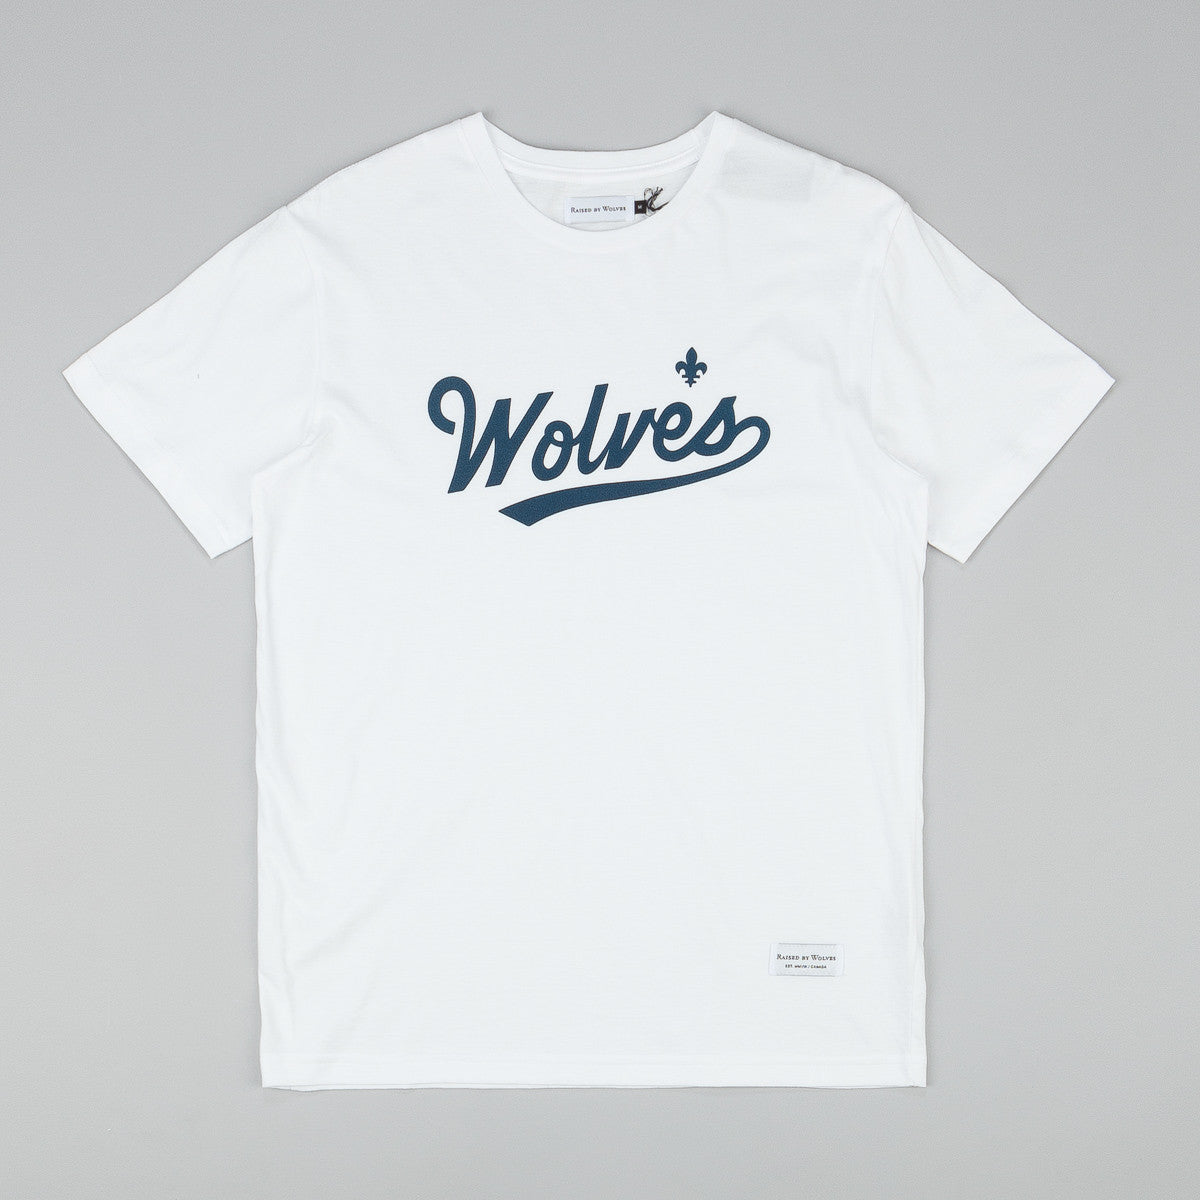 Raised By Wolves Raines T-Shirt